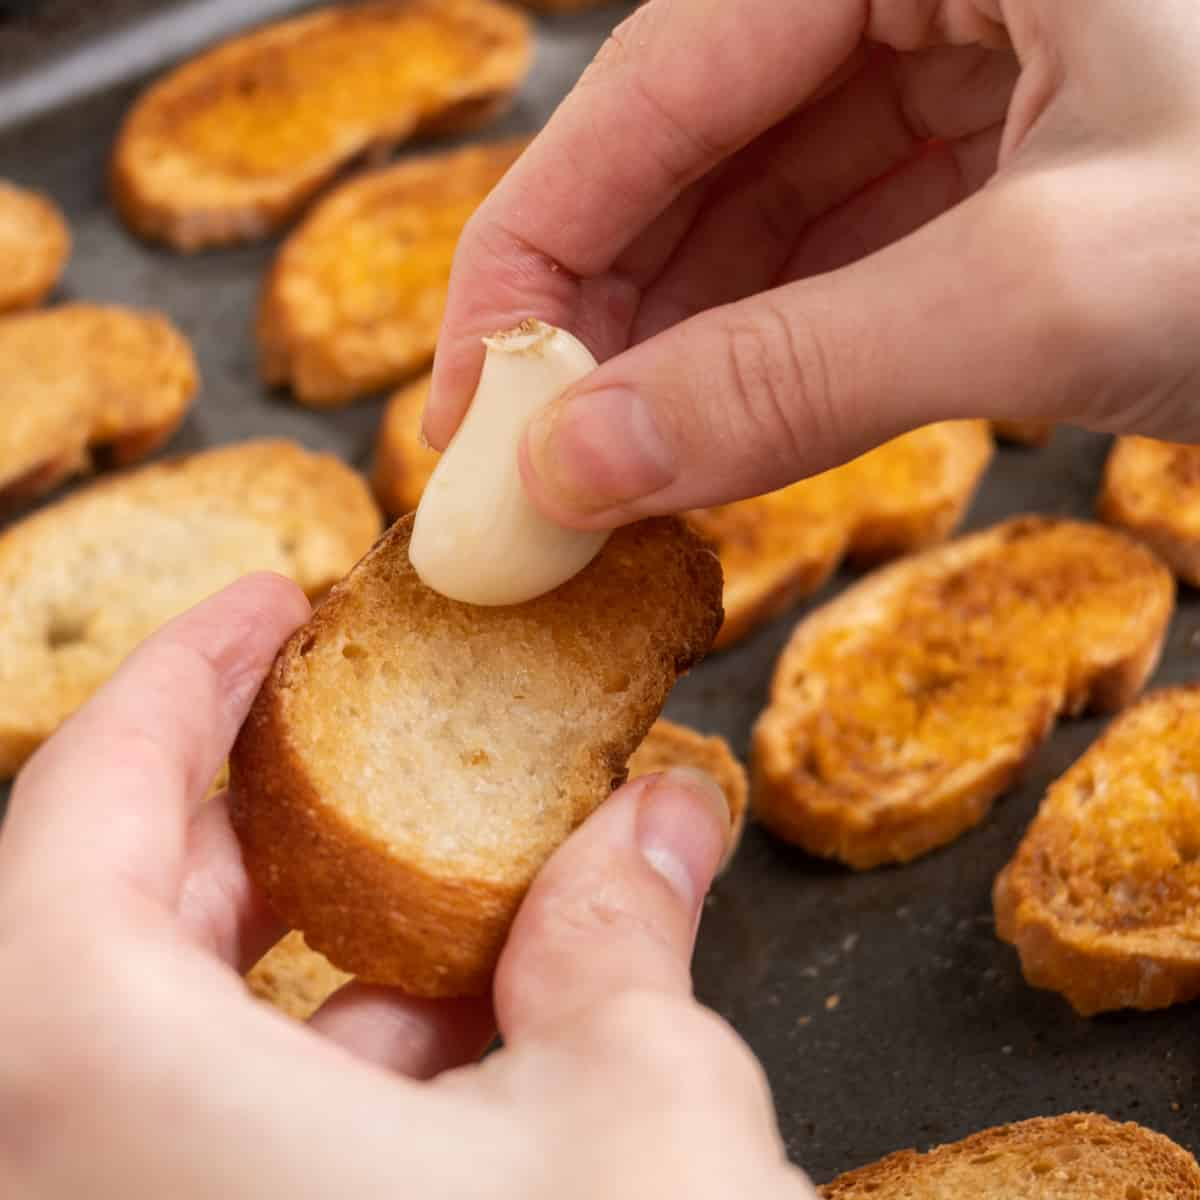 A fresh garlic clove is rubbed across a crostini to flavour it.